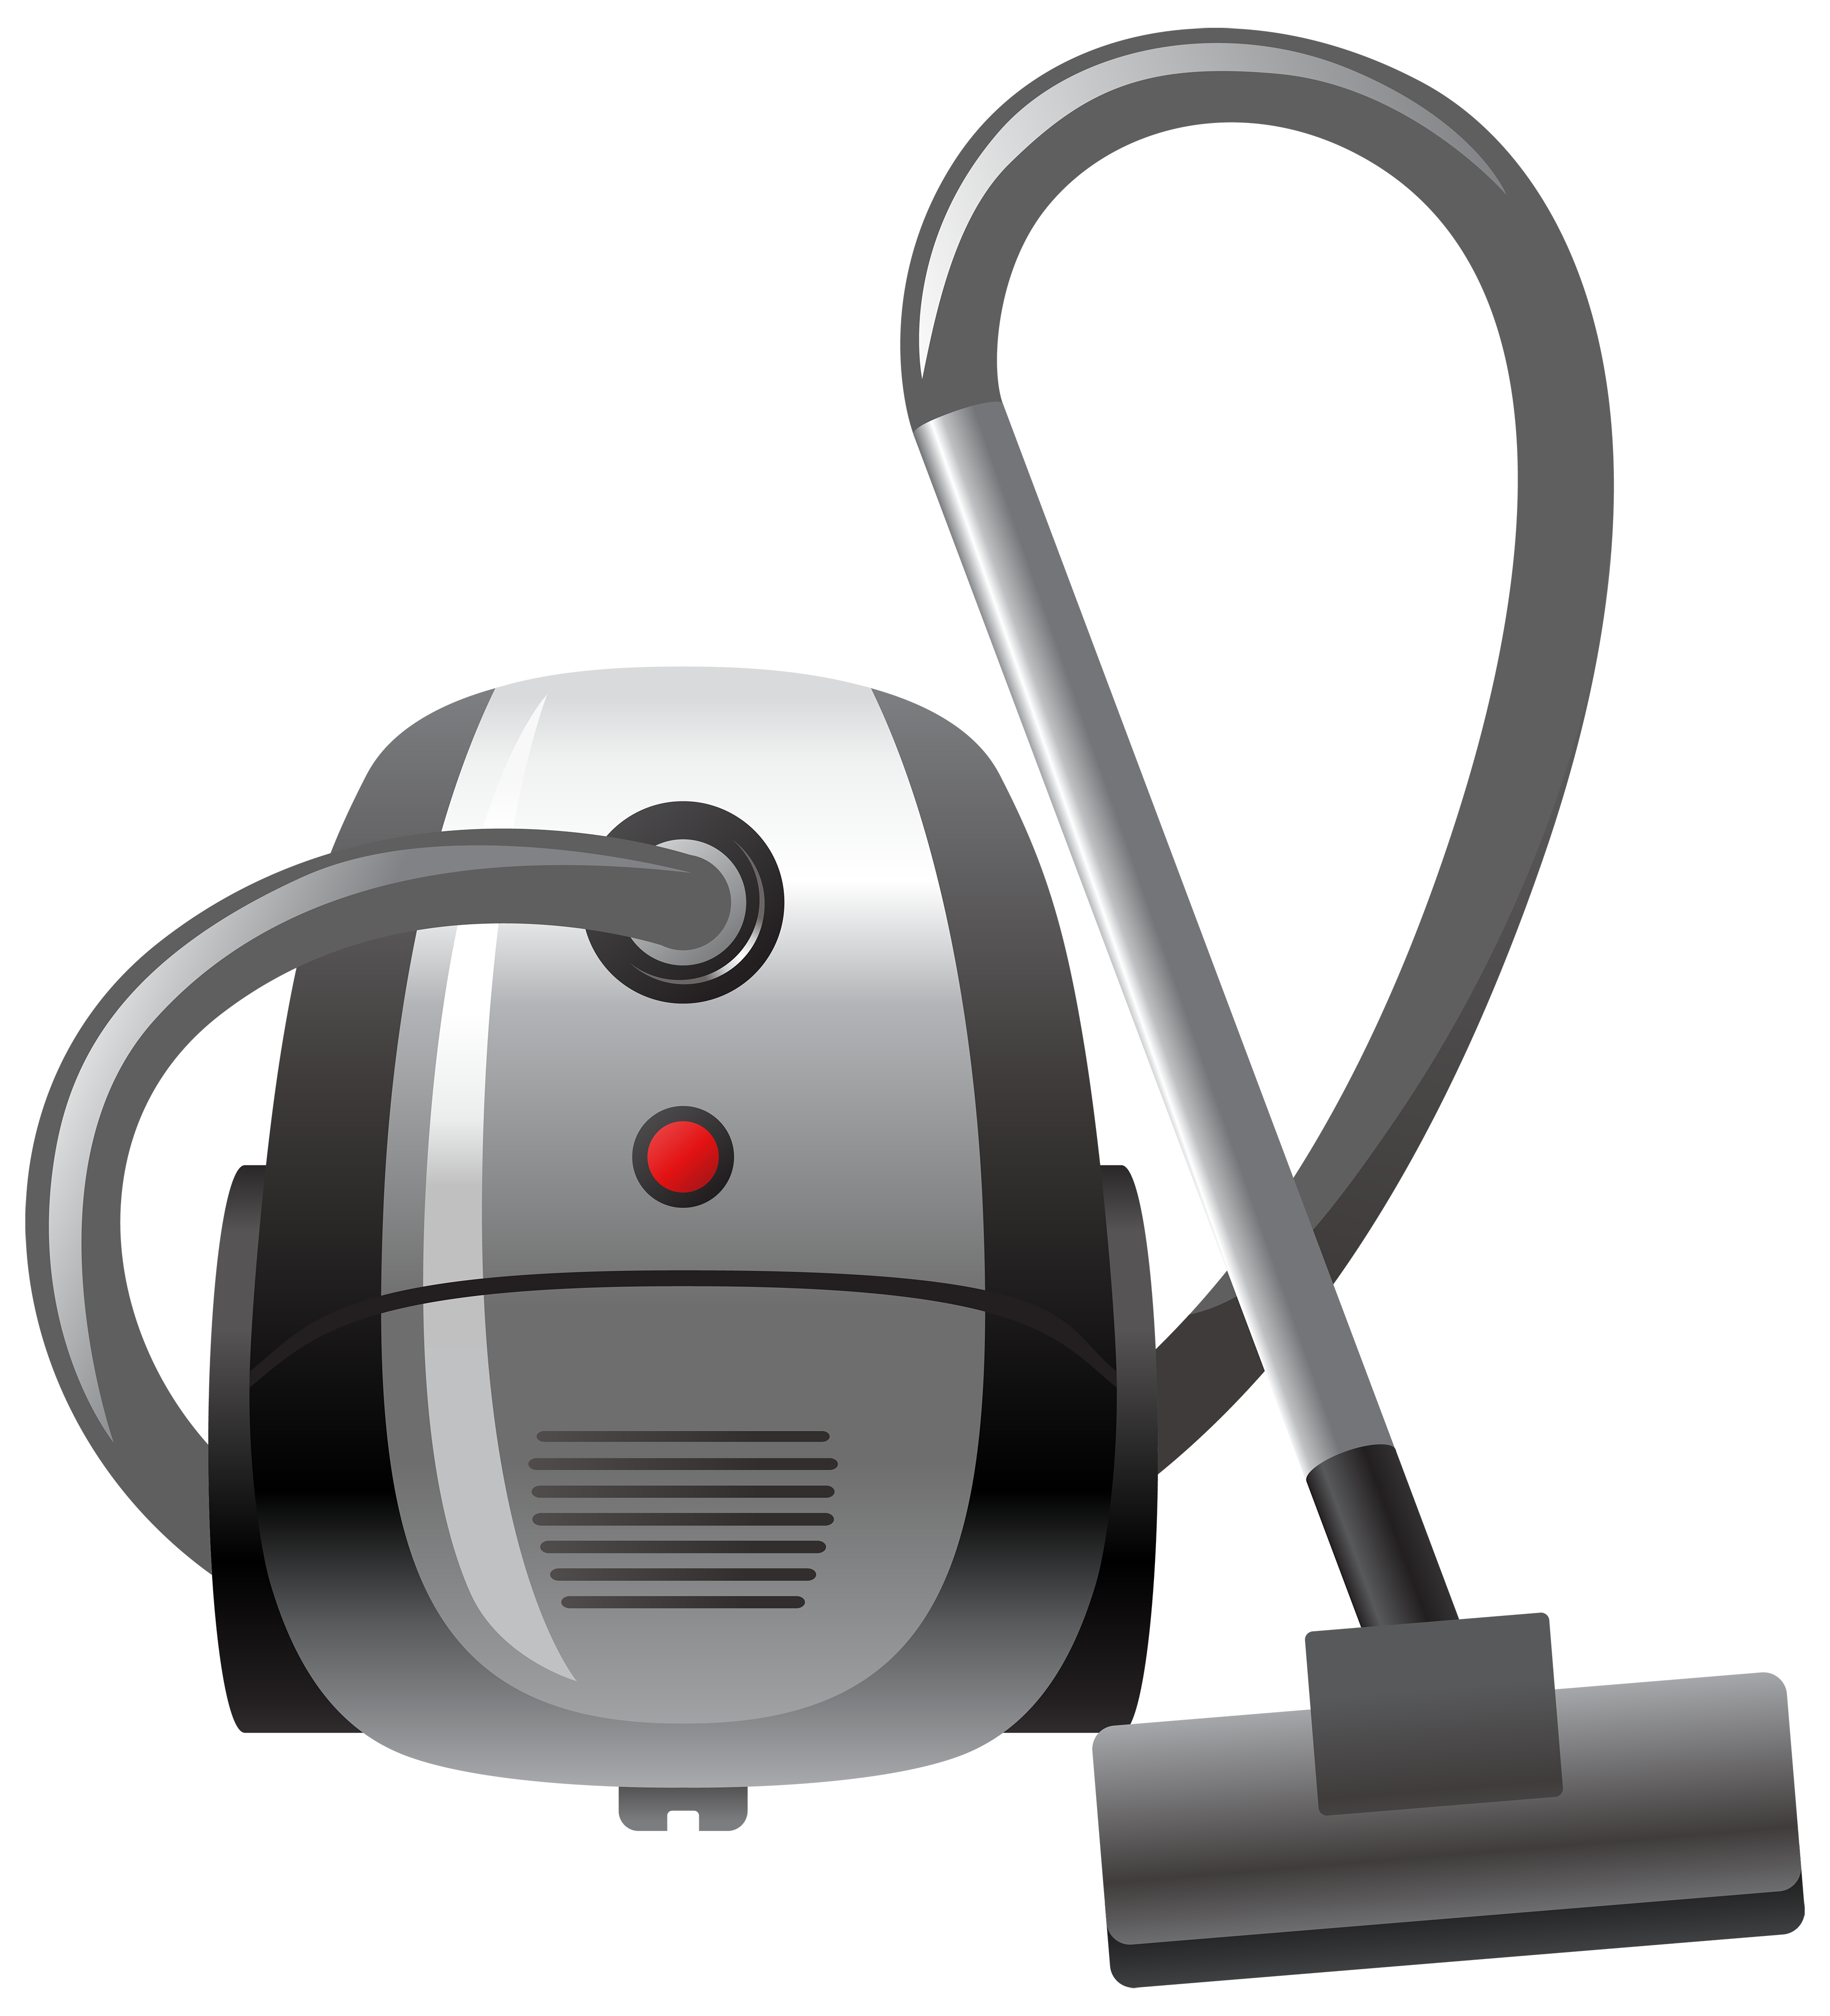 Vacuum box clipart images banner black and white stock Vacuum Cleaner PNG Clipart - Best WEB Clipart banner black and white stock